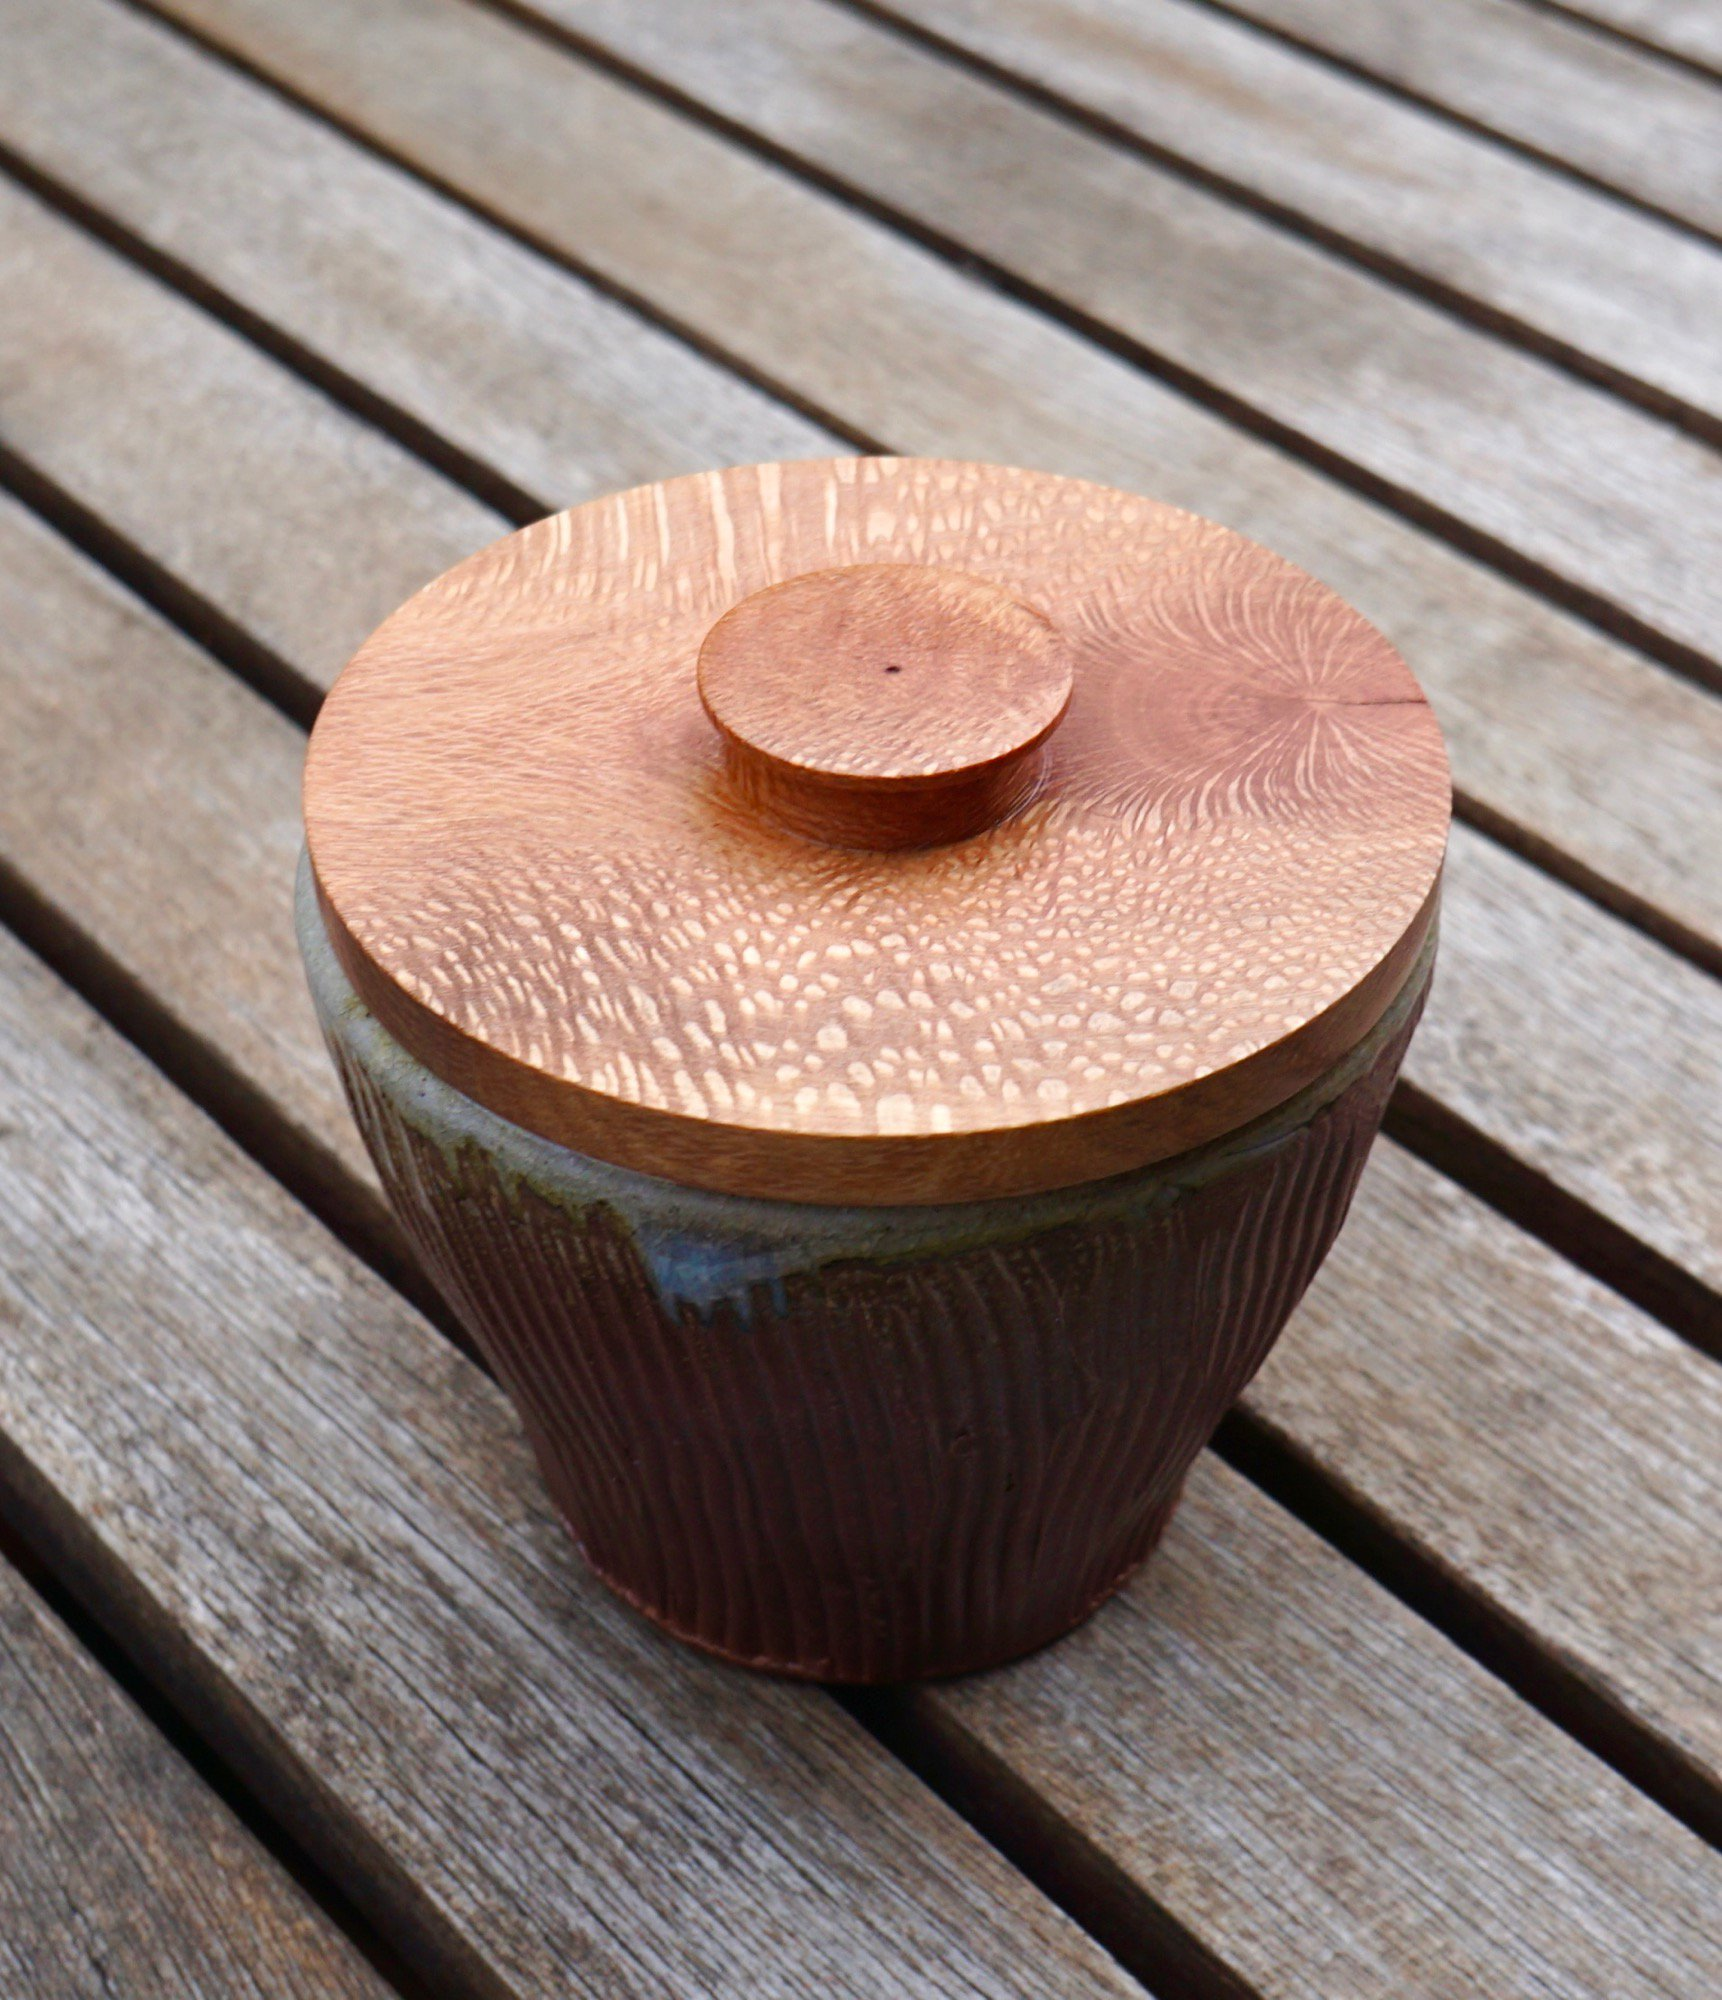 Ceramic bowl with turned macadamia lid